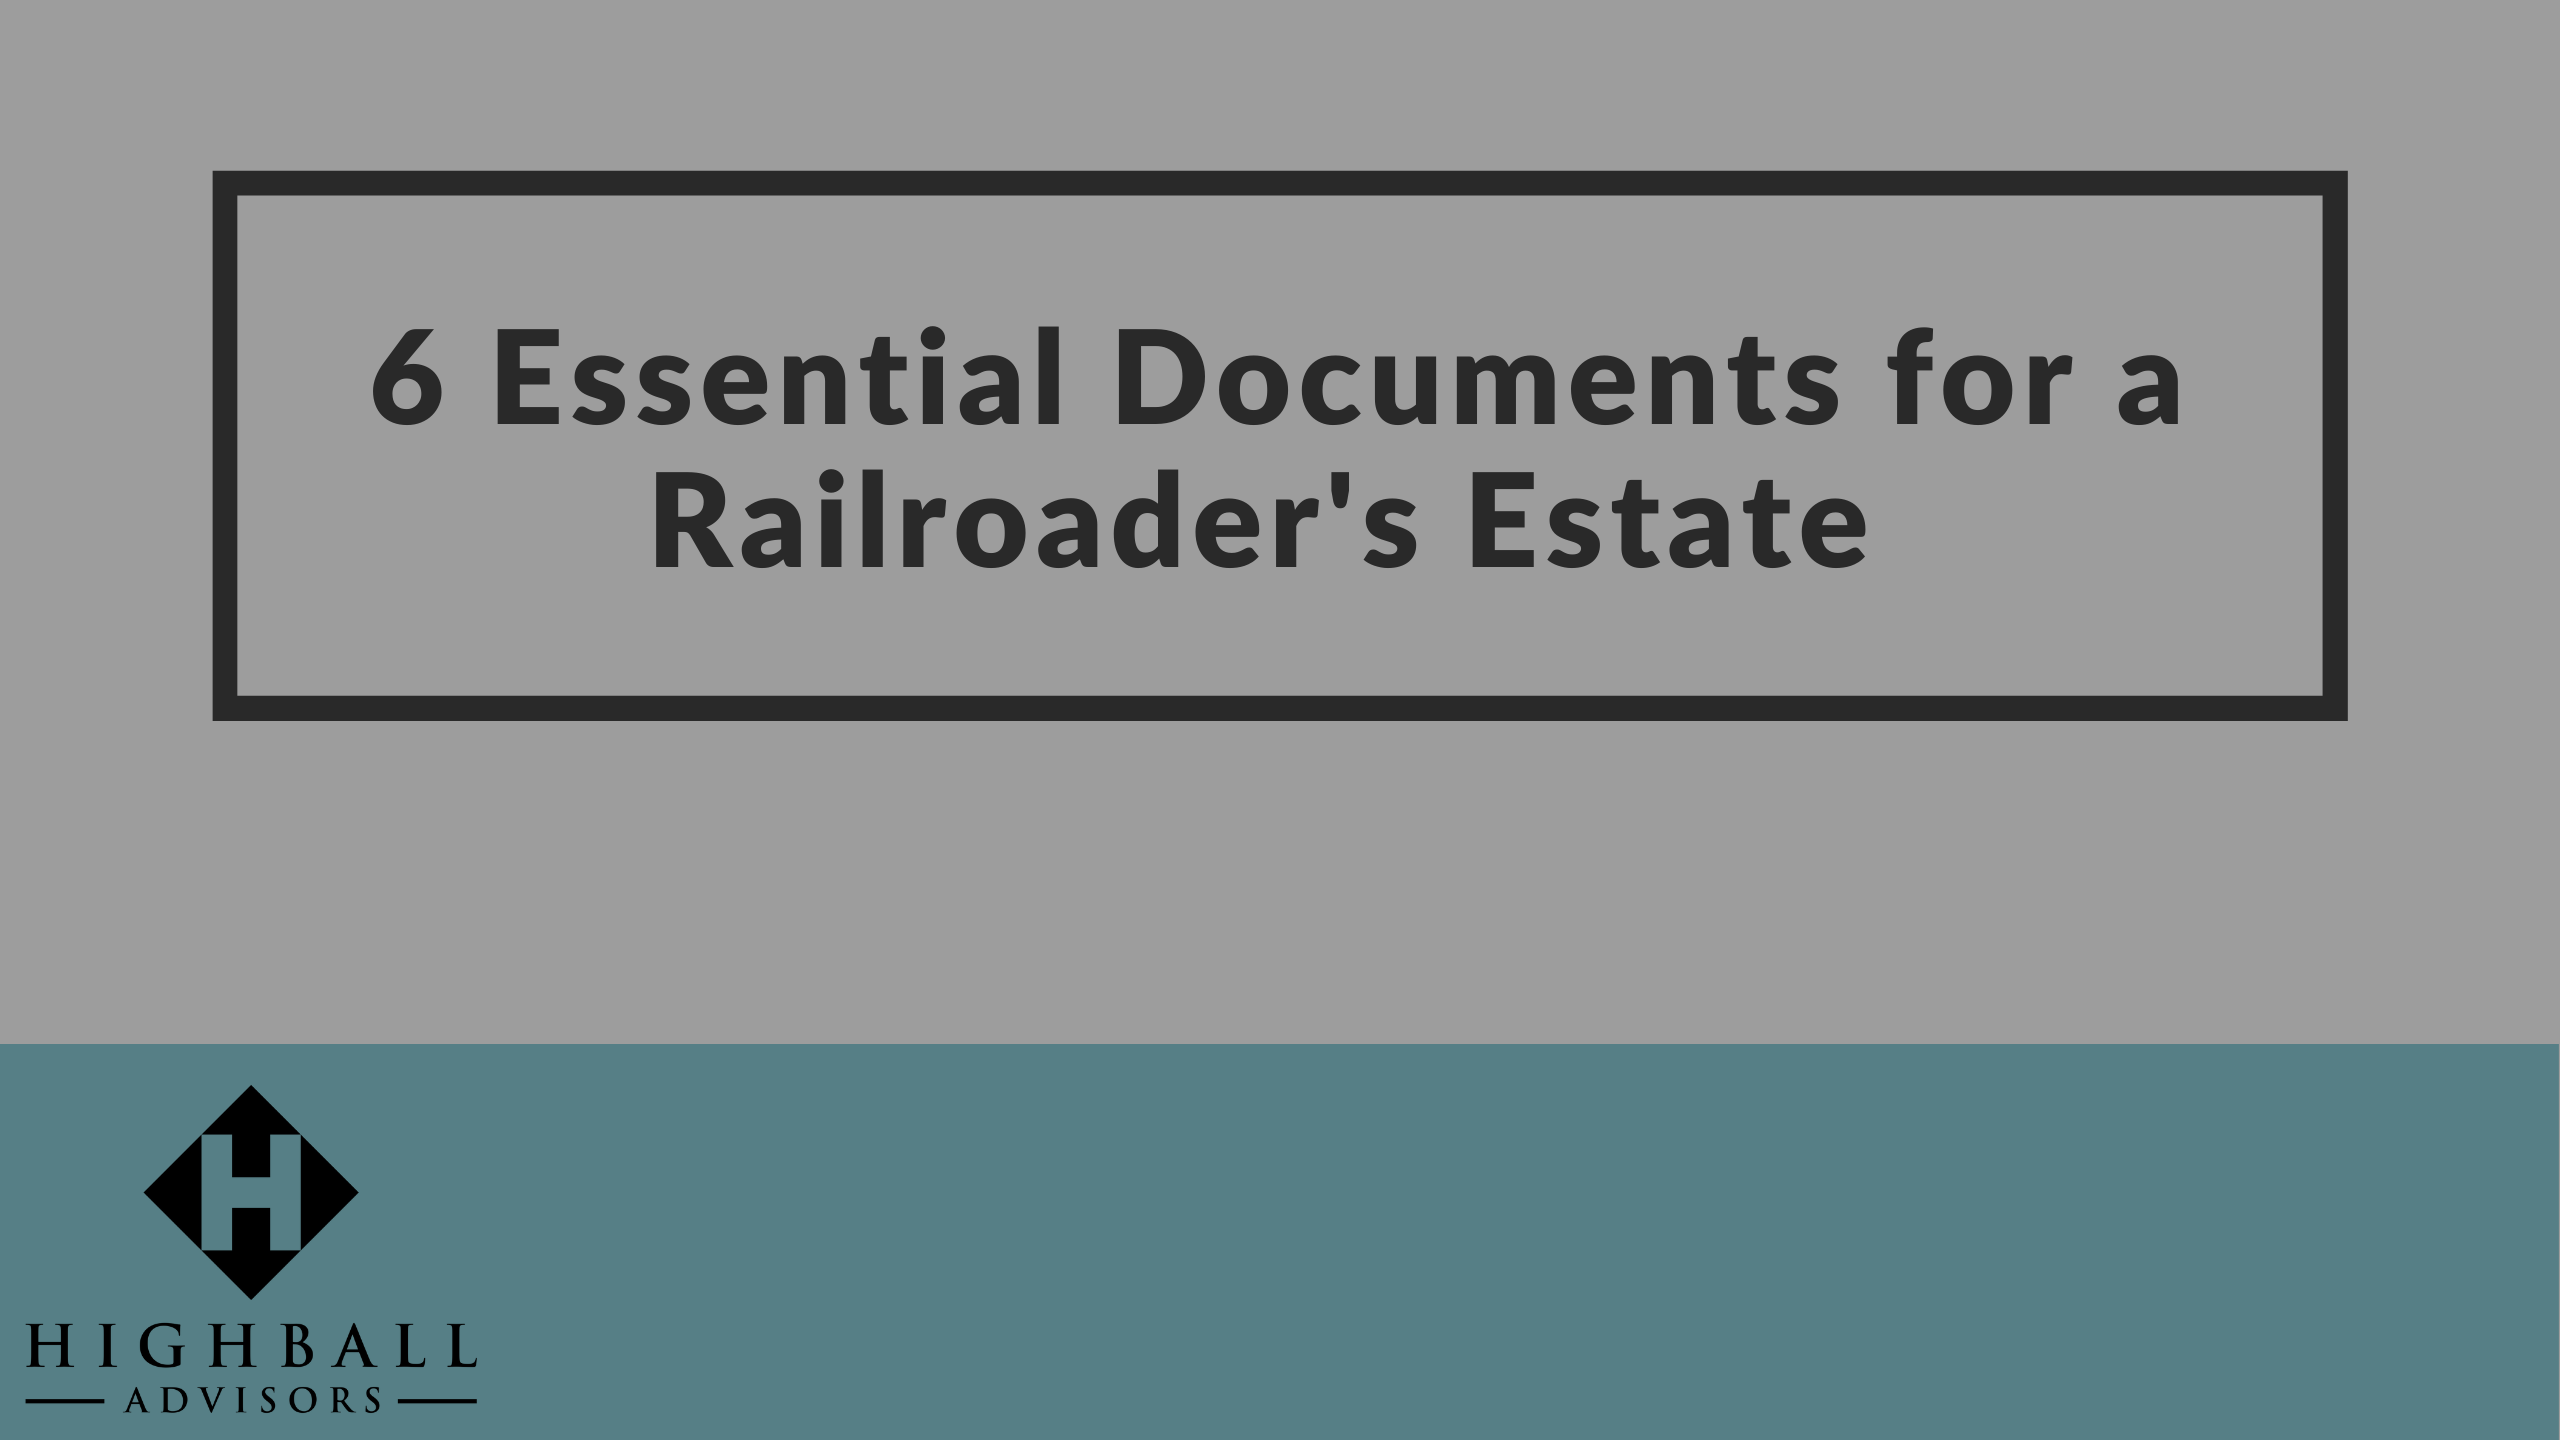 6 Essential Documents for a Railroader's Estate Thumbnail